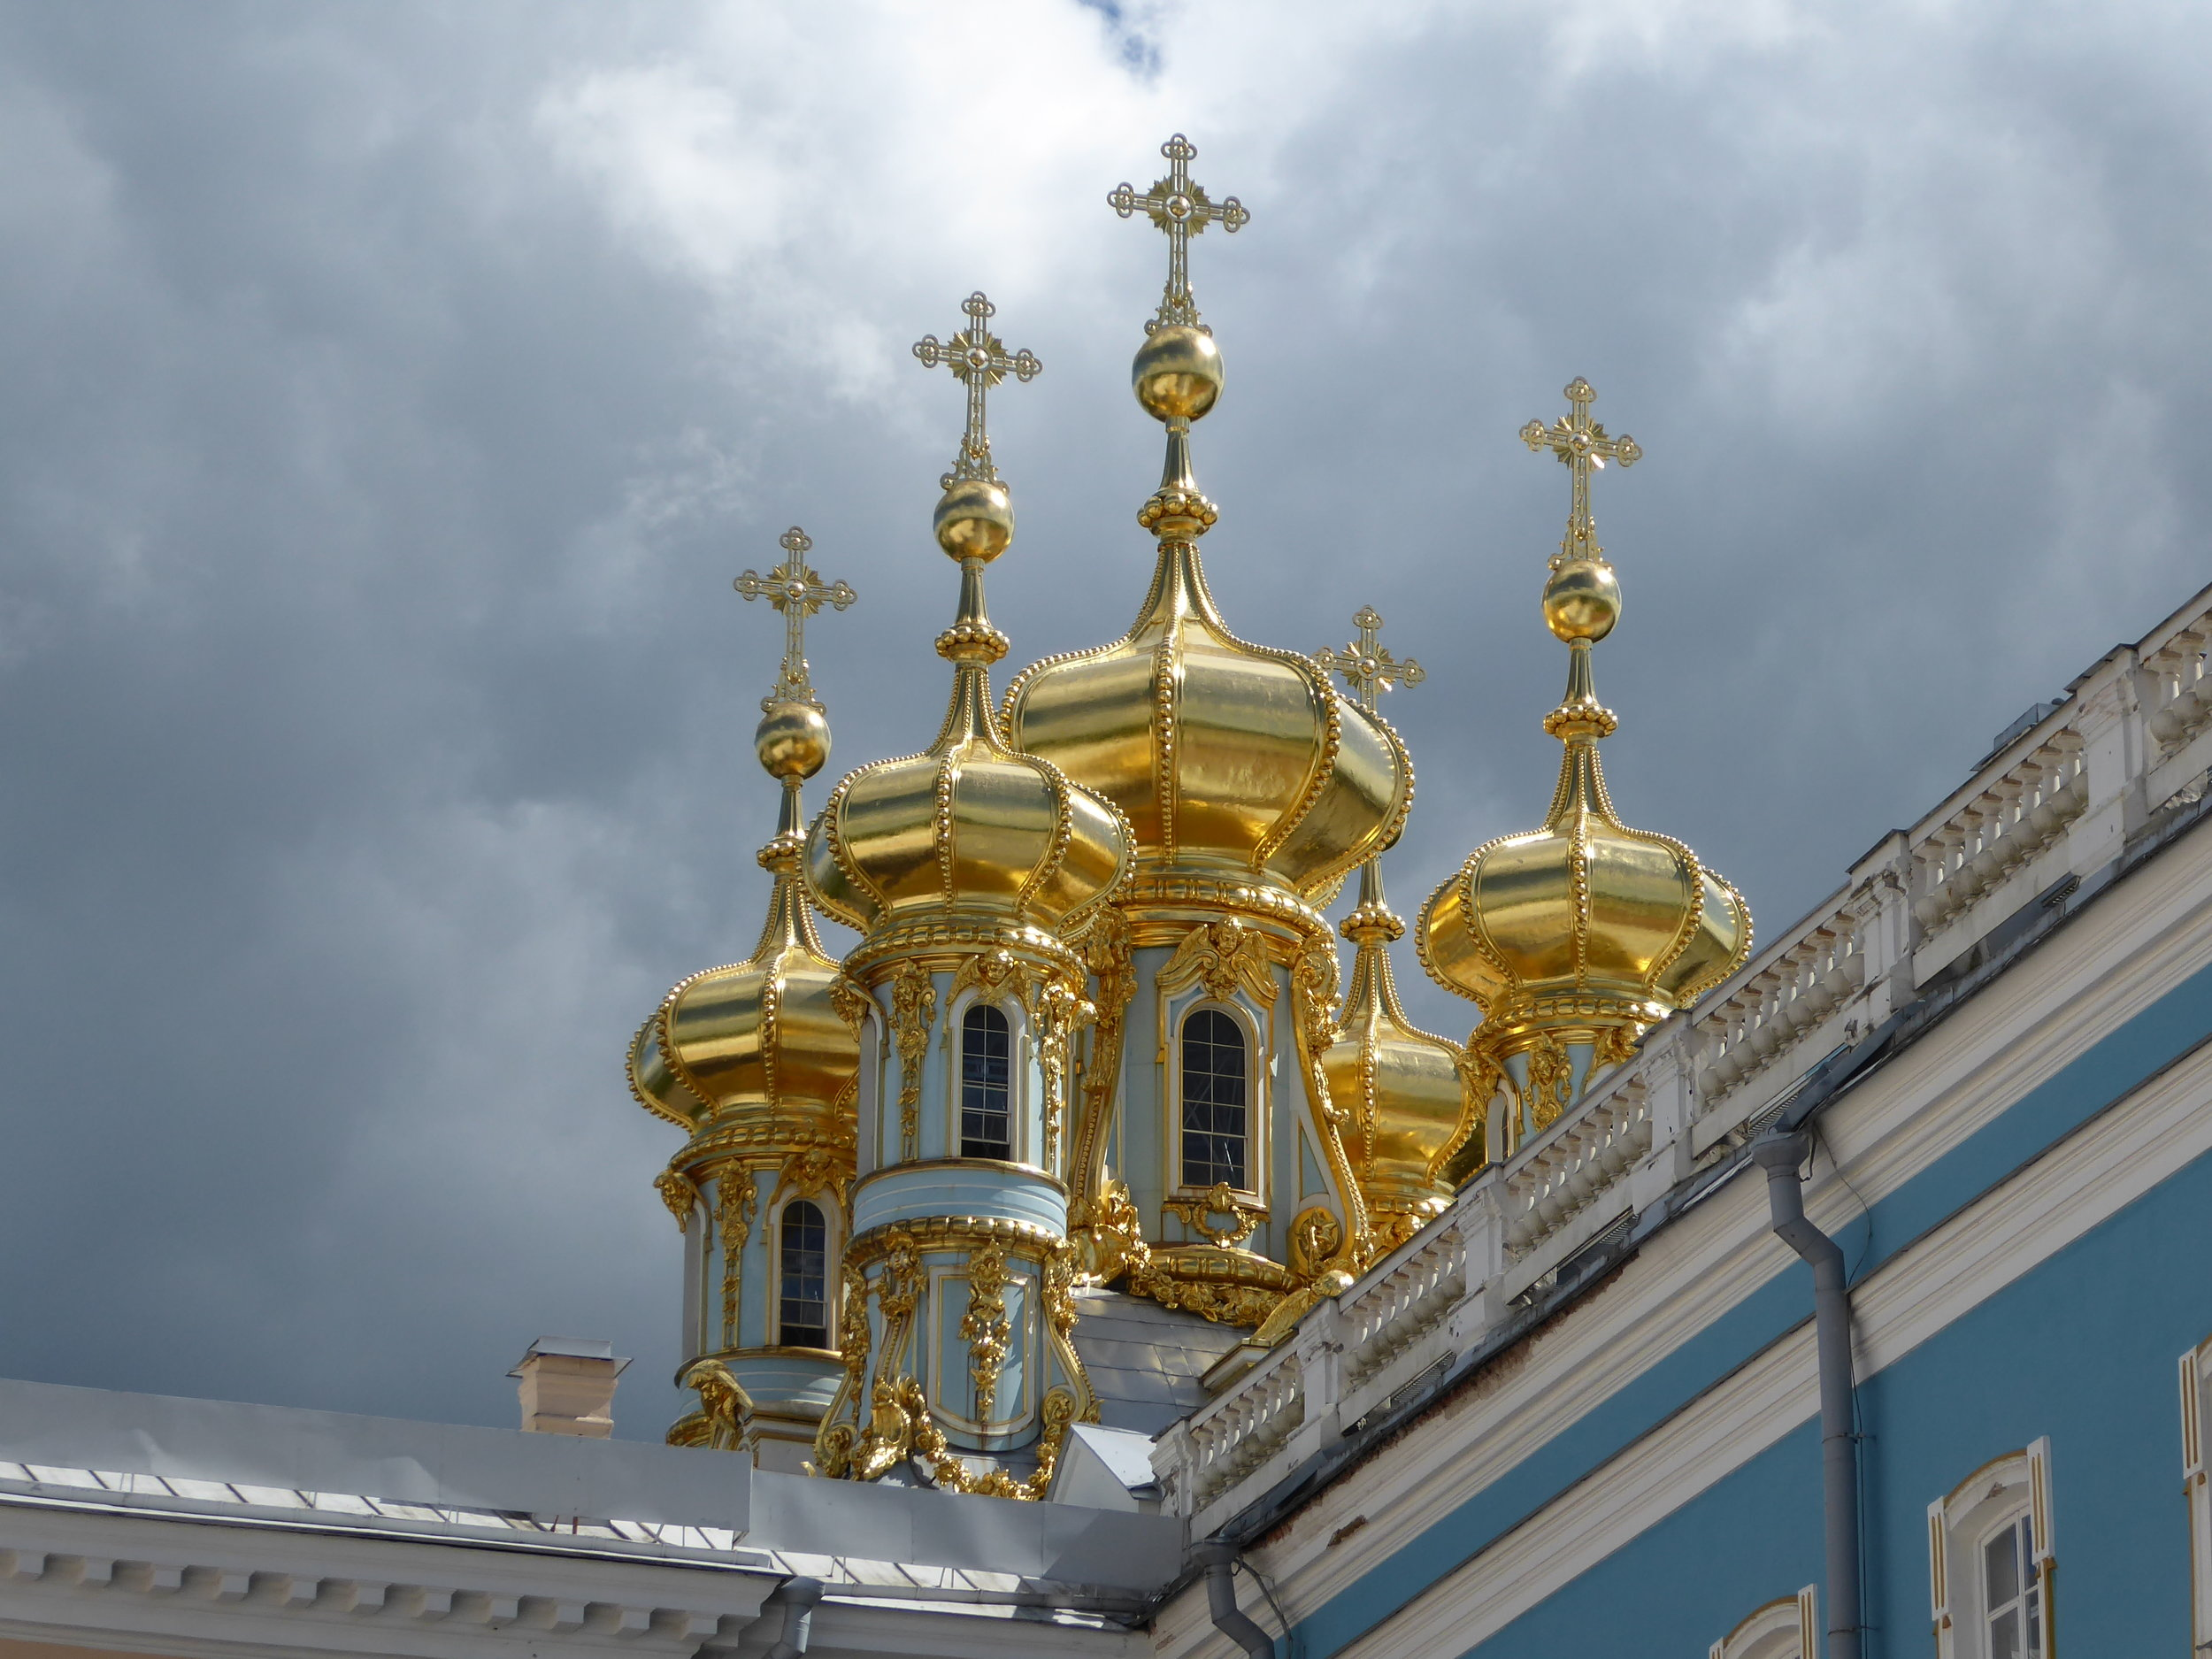 Catherine's Palace about a 1 hour drive from St. Petersburg in a pastoral countryside setting. Gold, gold, everywhere. Move over, Versailles...this place is incredible!